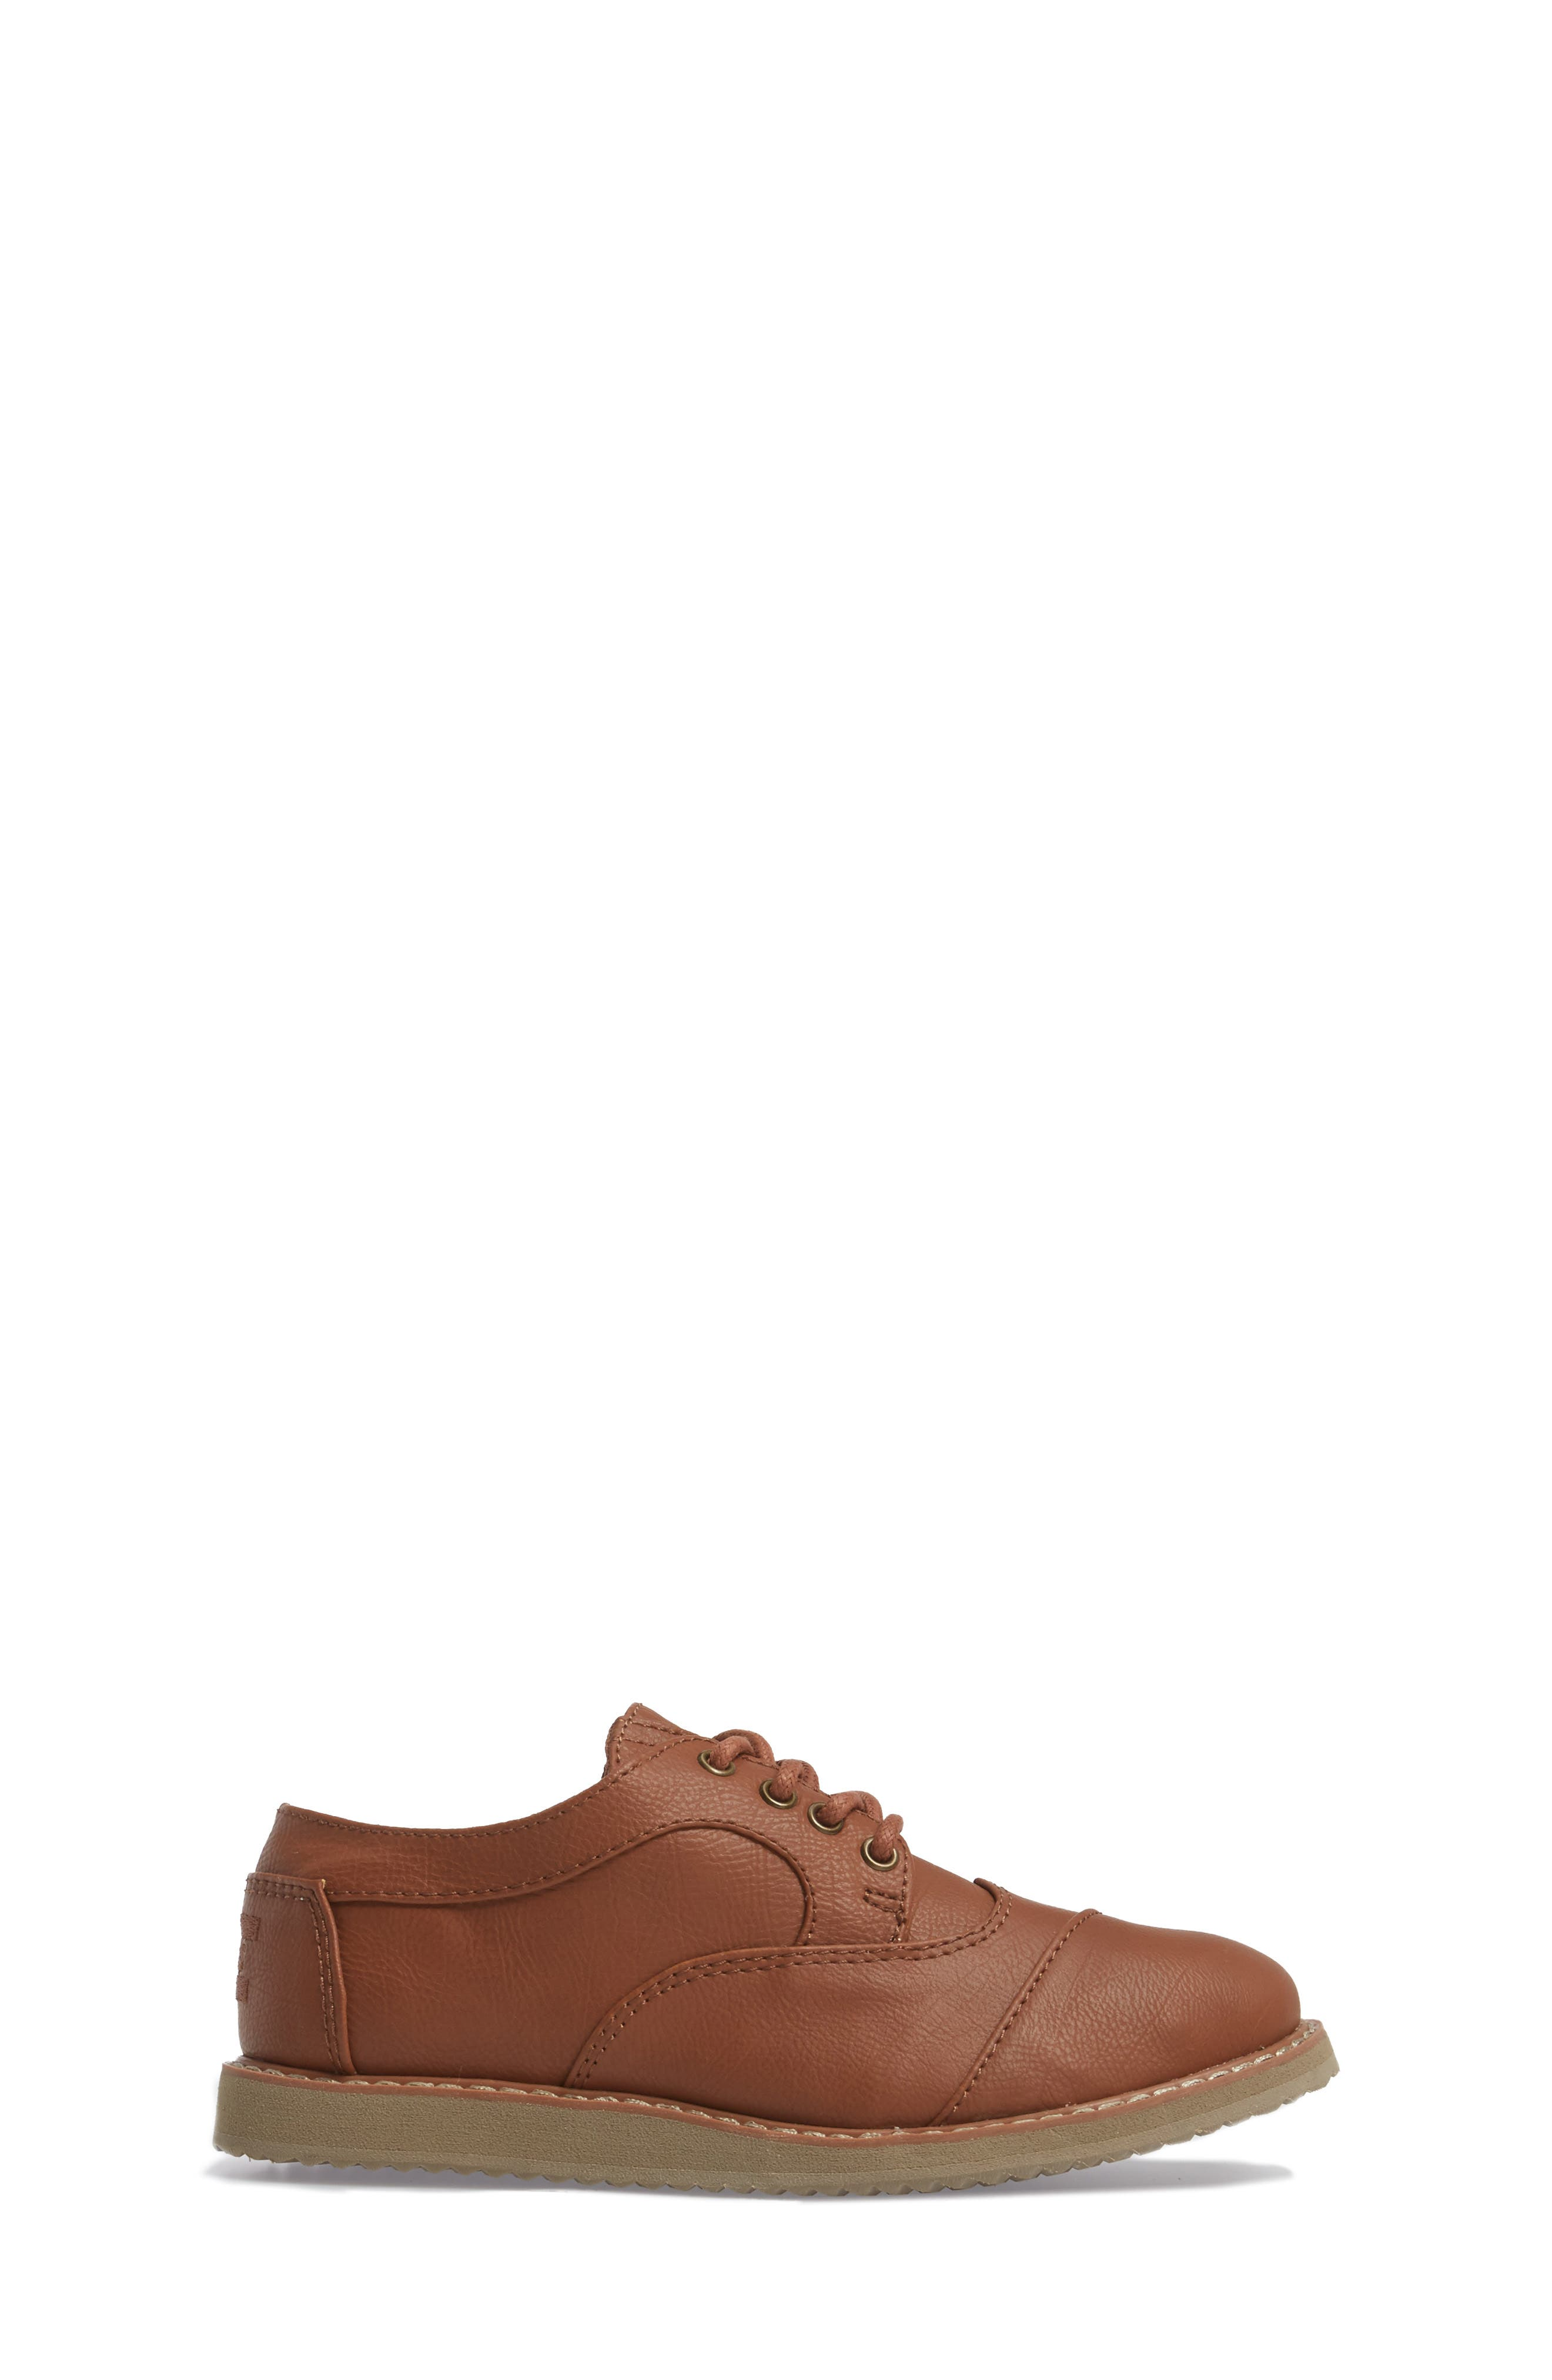 Brogue Cap Toe Wingtip Oxford,                             Alternate thumbnail 3, color,                             TOFFEE